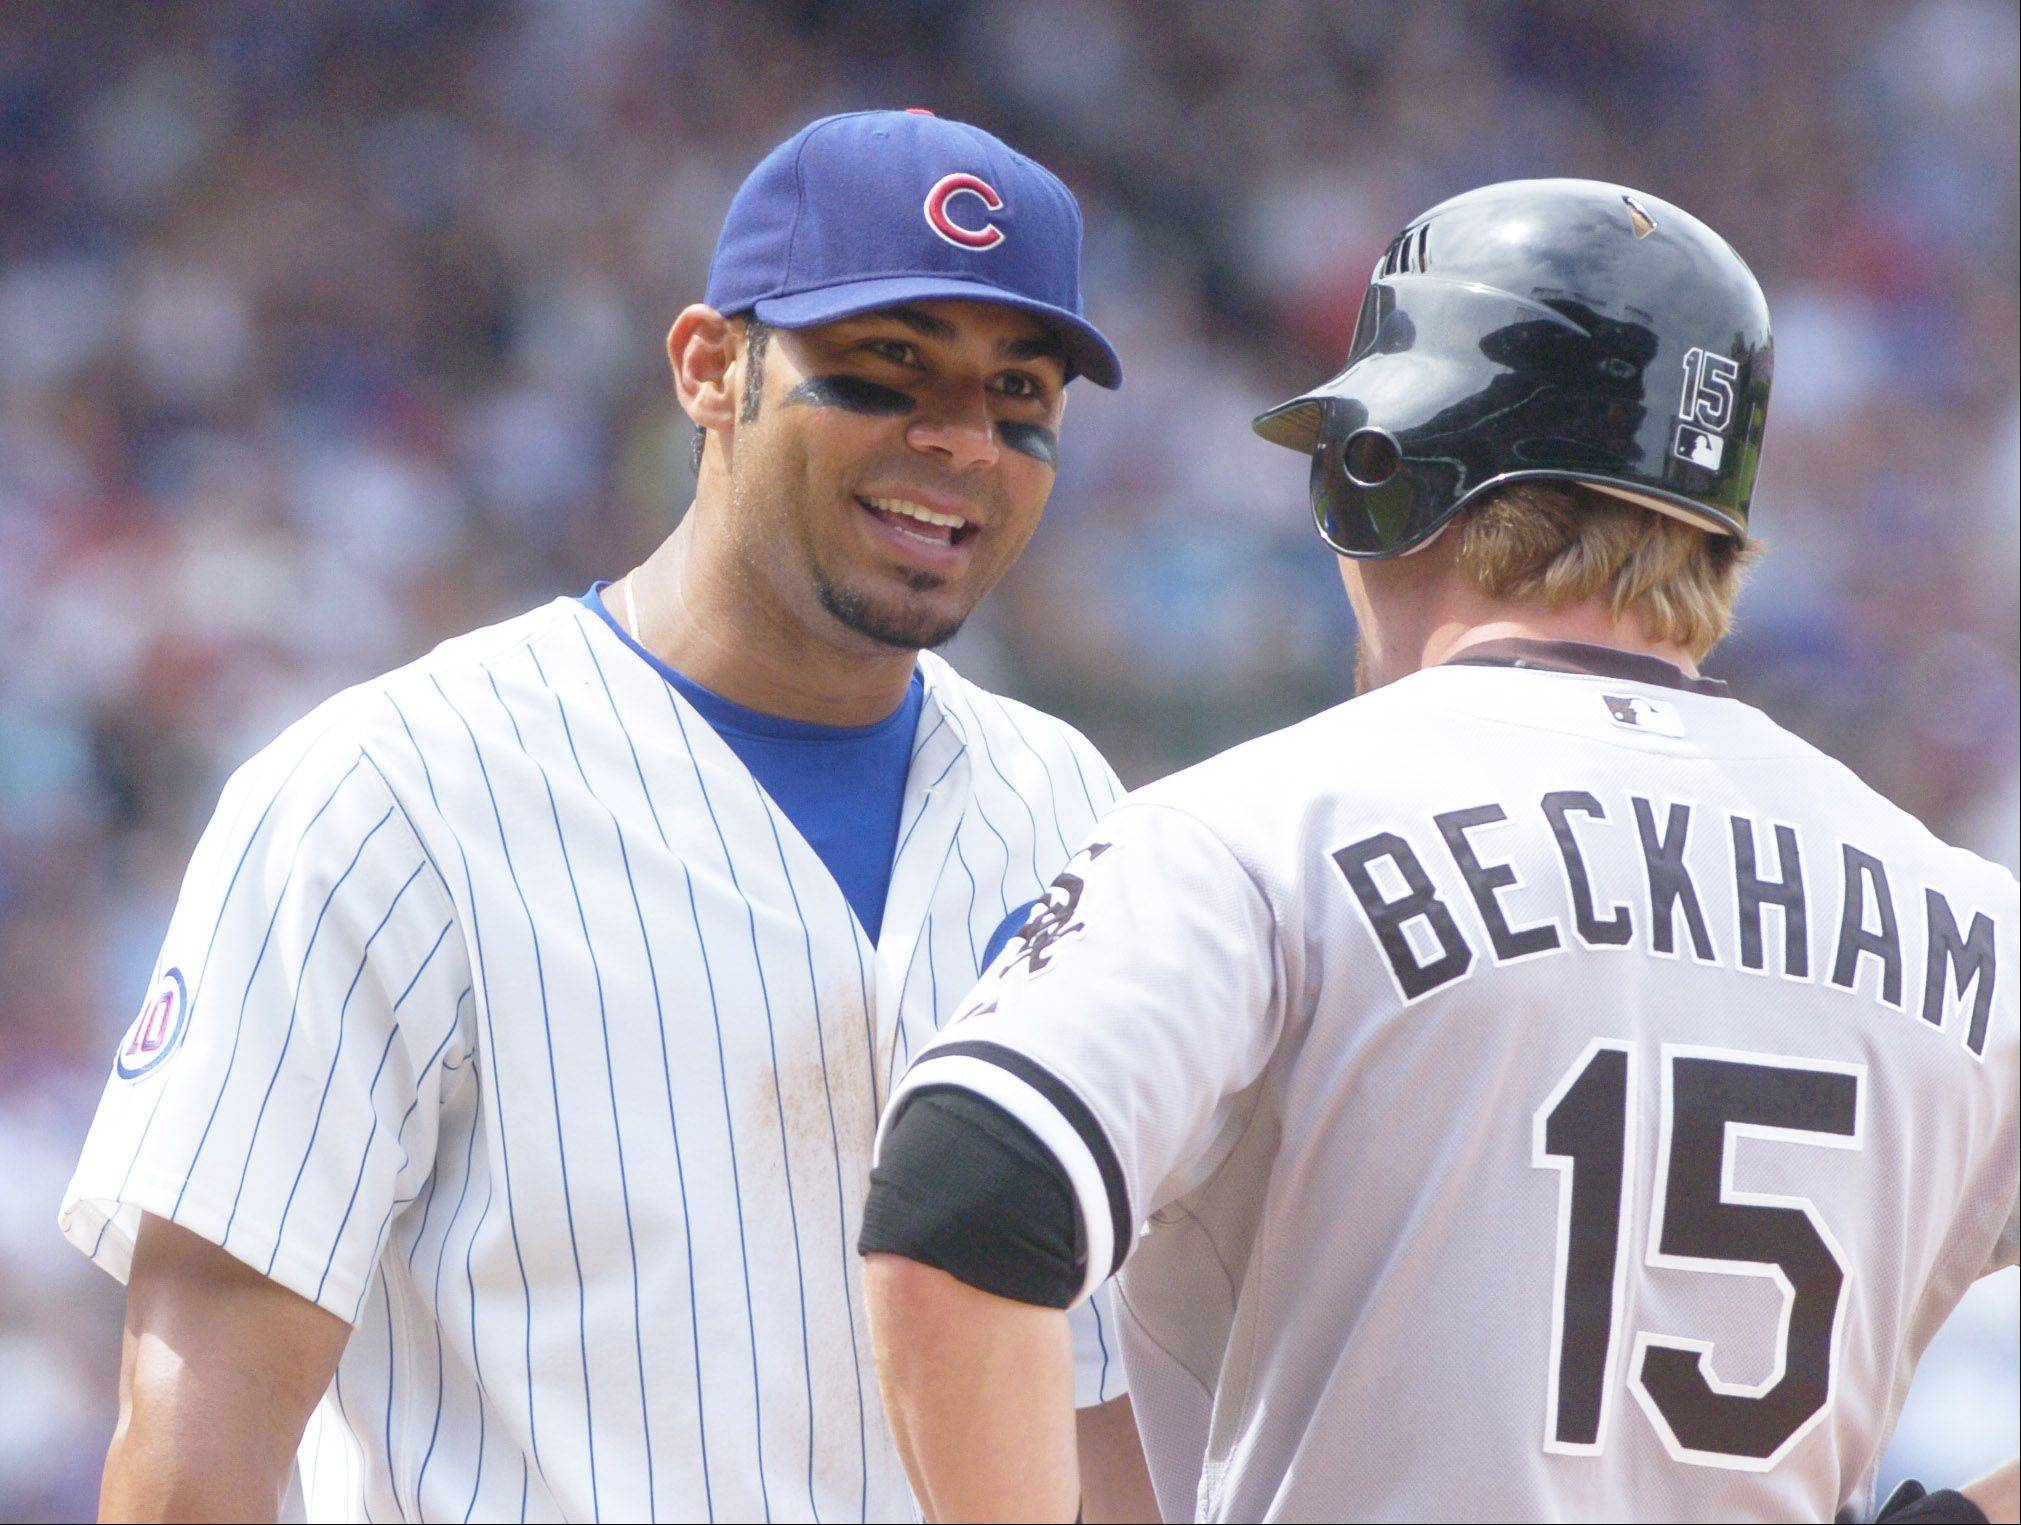 Cubs first baseman Carlos Pena chats with Gordon Beckham of the White Sox during Sunday's game at Wrigley Field.